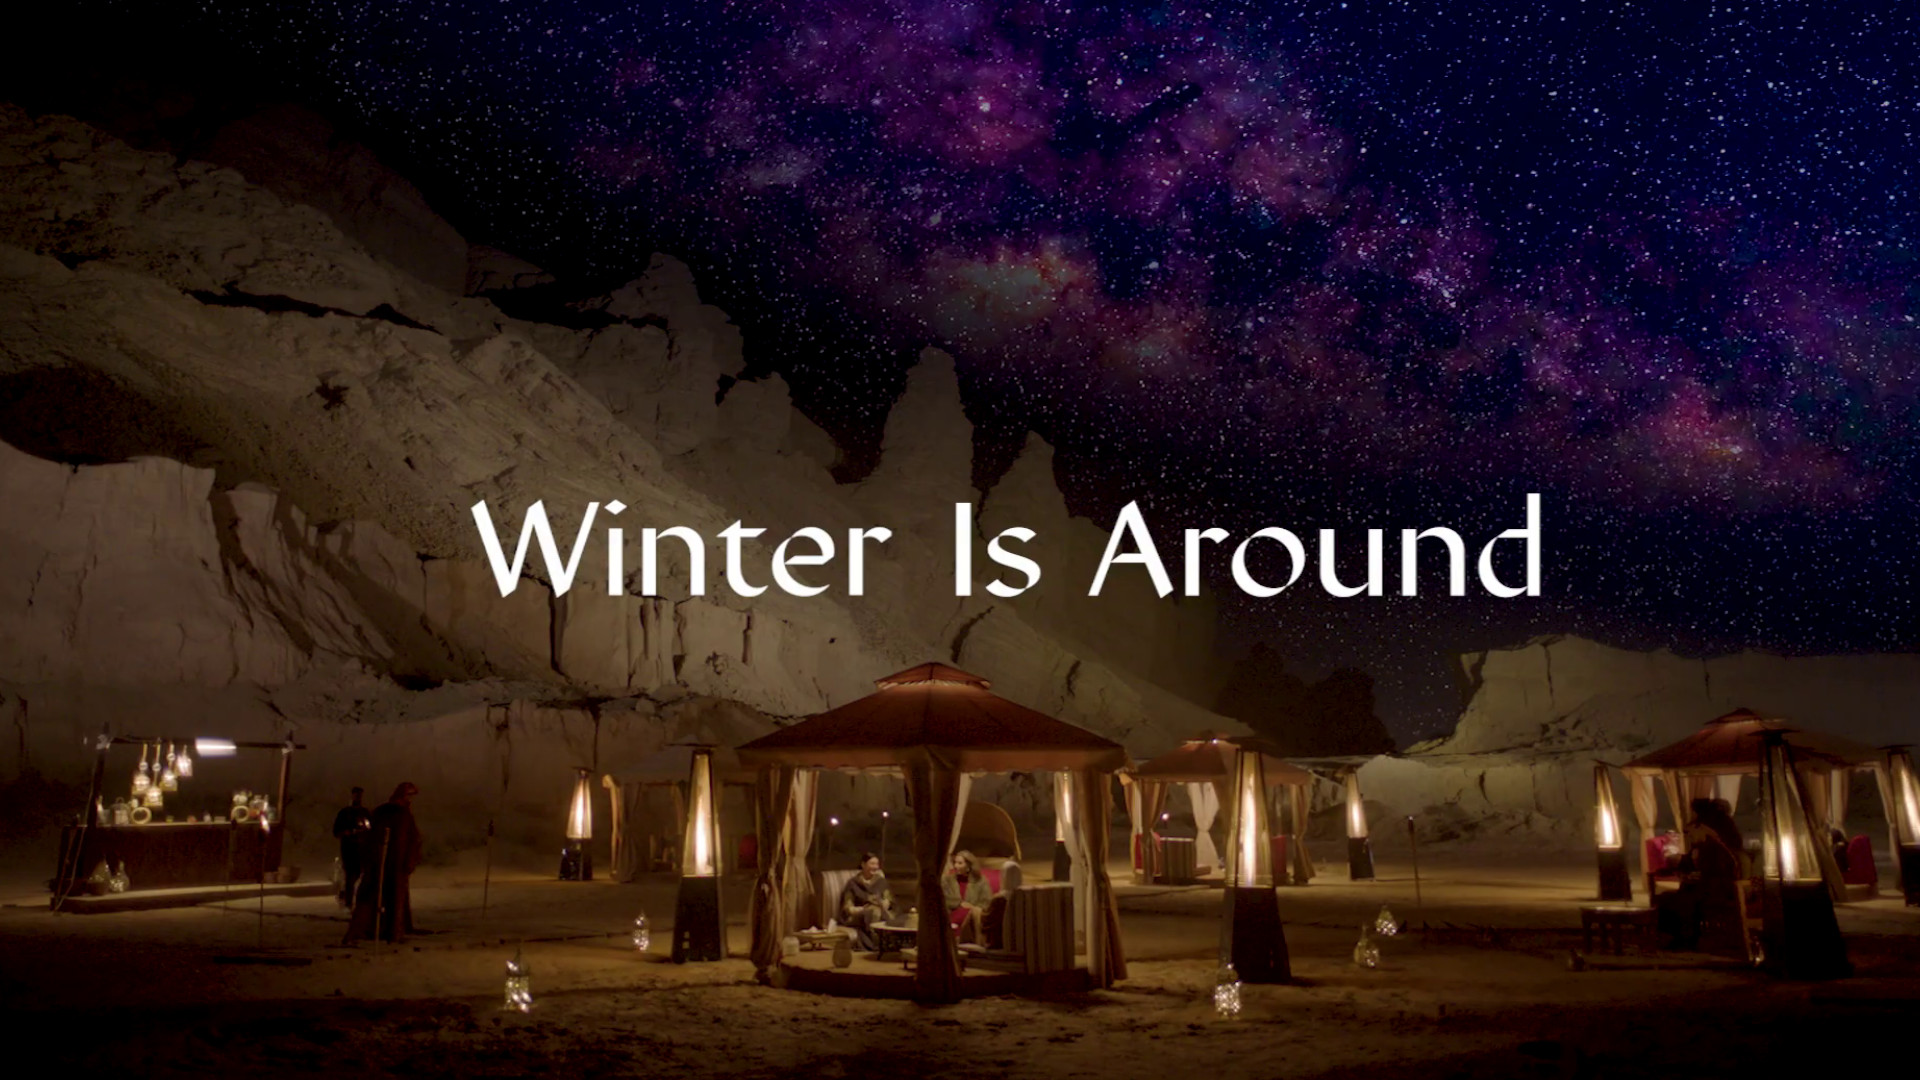 Discover #ArabianWinter Campaign by Saudi Tourism Authority